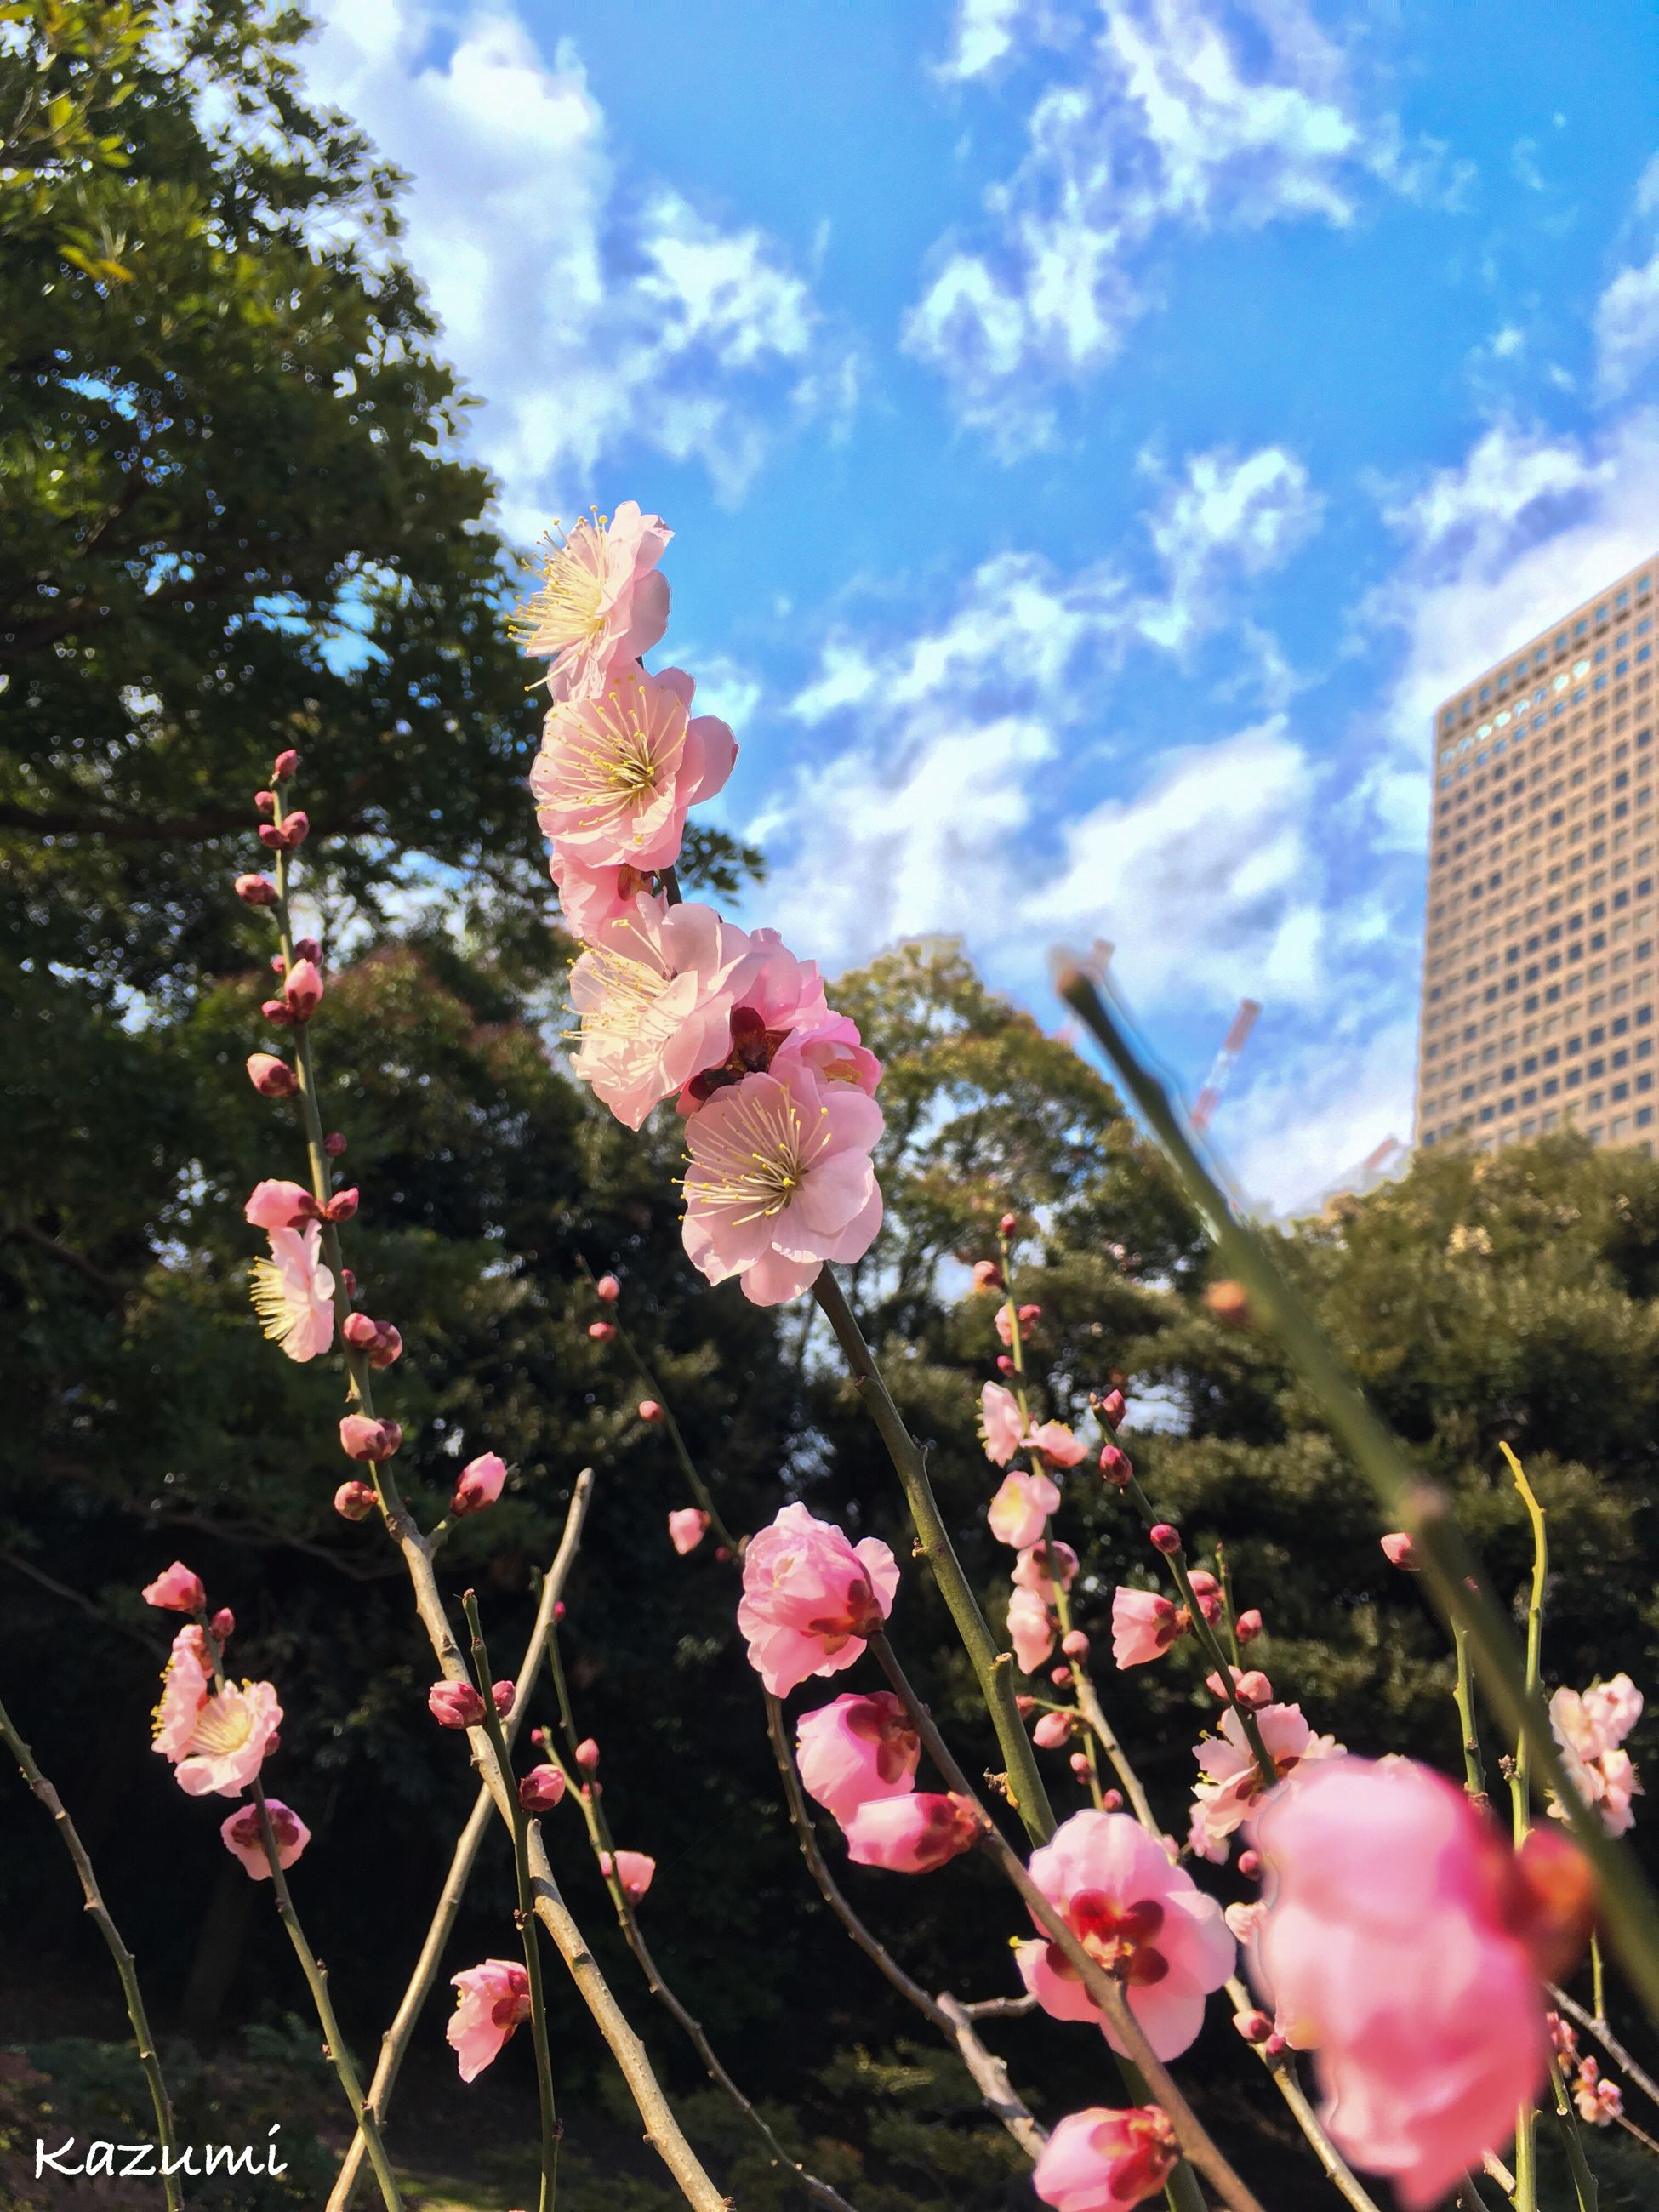 flower, growth, sky, nature, tree, fragility, beauty in nature, low angle view, pink color, plant, day, sunlight, no people, springtime, built structure, outdoors, blossom, flower head, cloud - sky, blooming, freshness, city, architecture, close-up